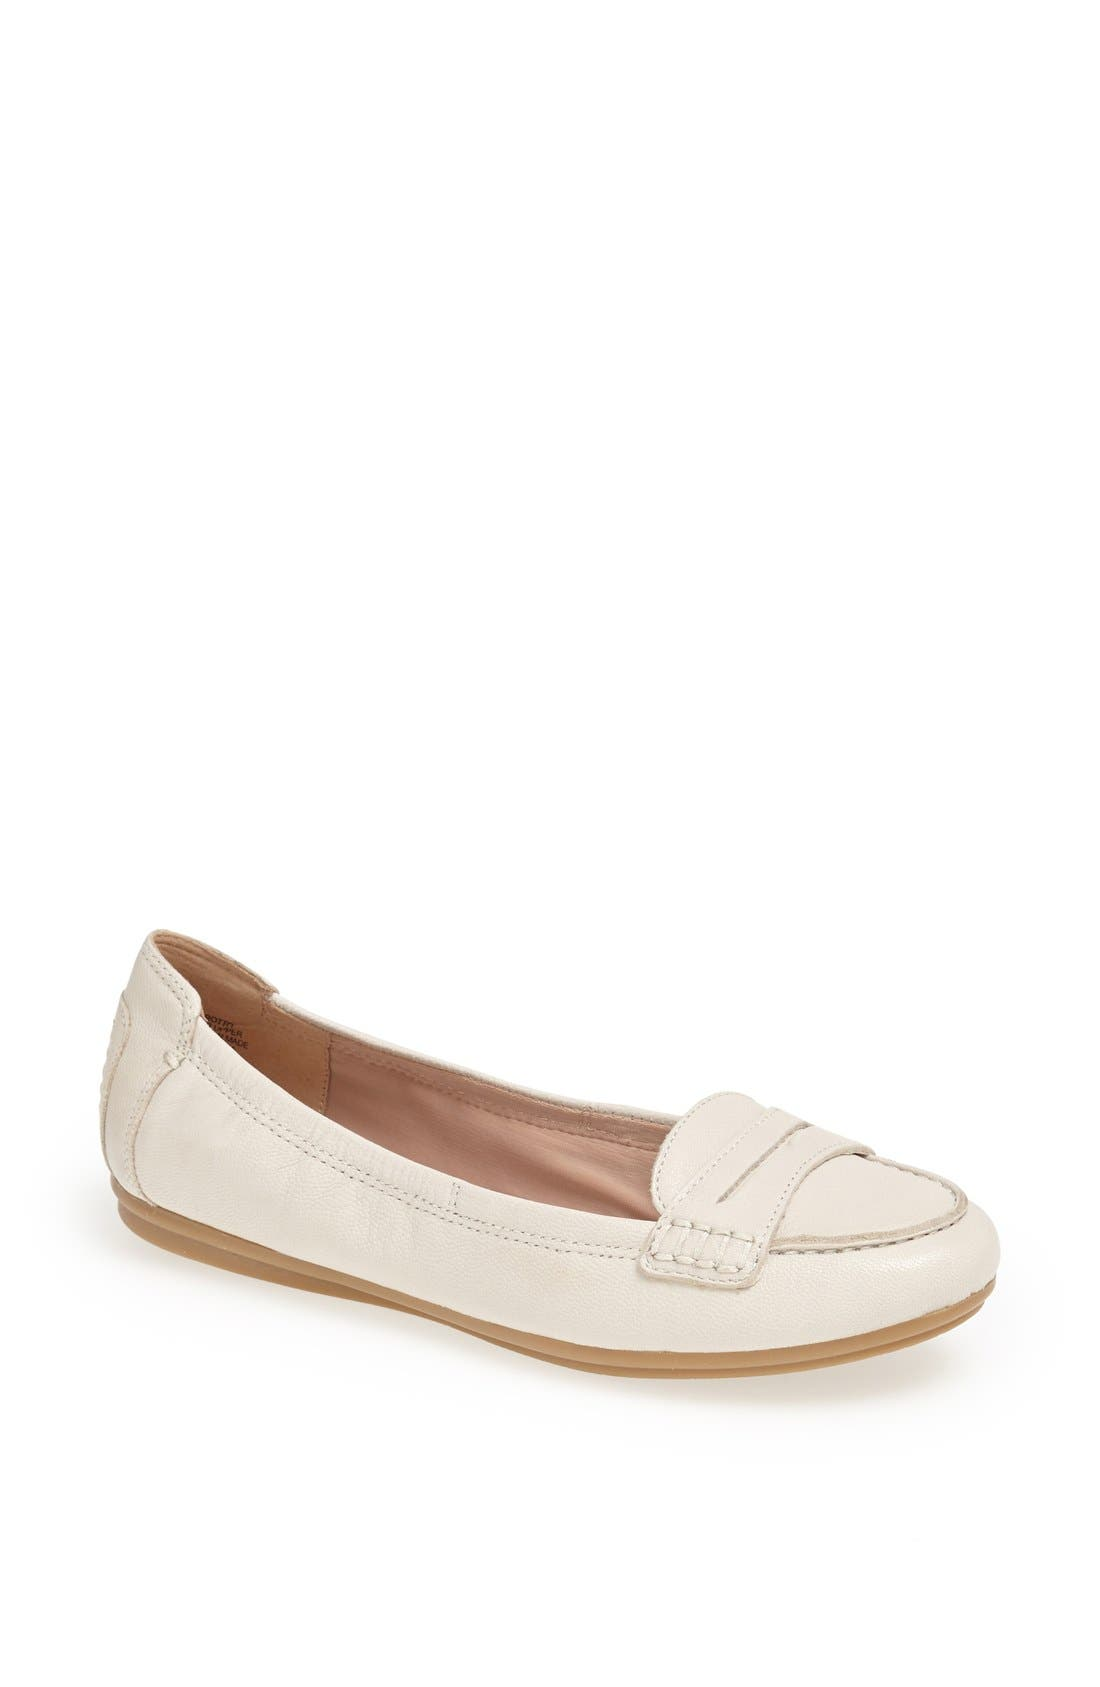 Main Image - Easy Spirit 'e360 - Grotto' Leather Penny Loafer (Women)